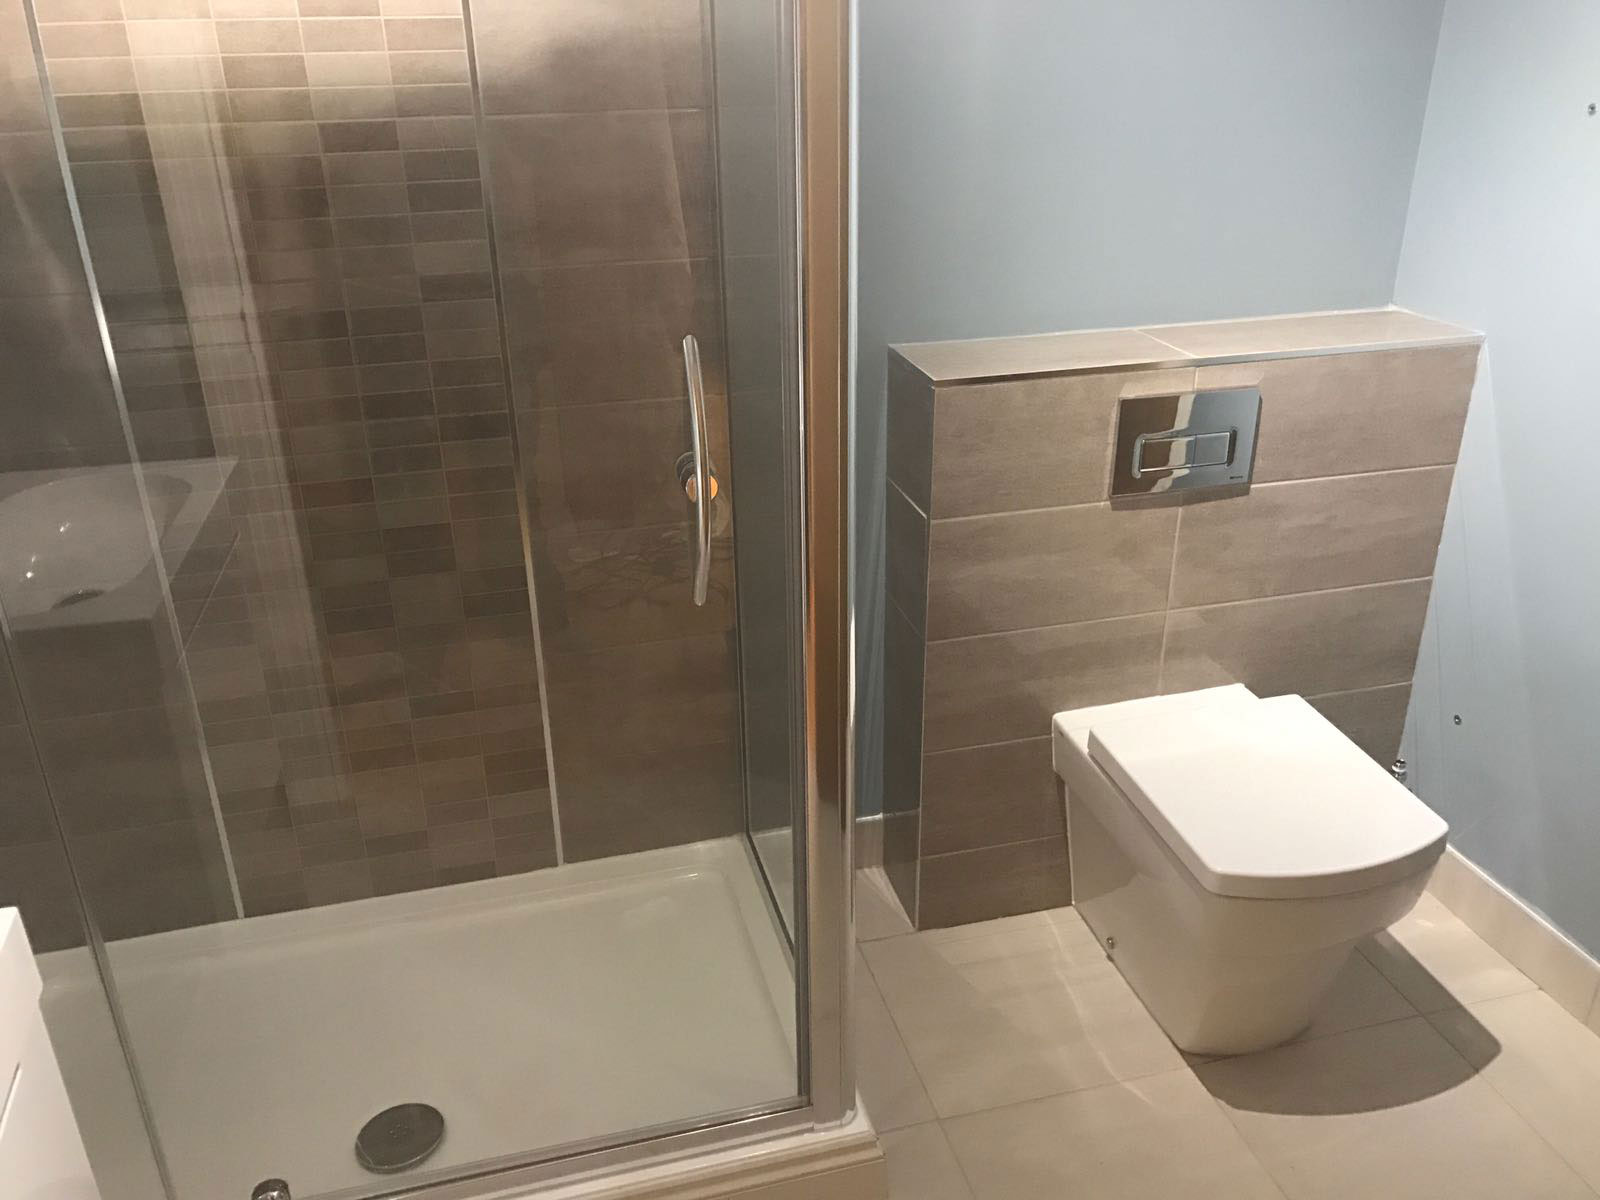 Two New Bathroom Suites Installations In Moseley Birmingham